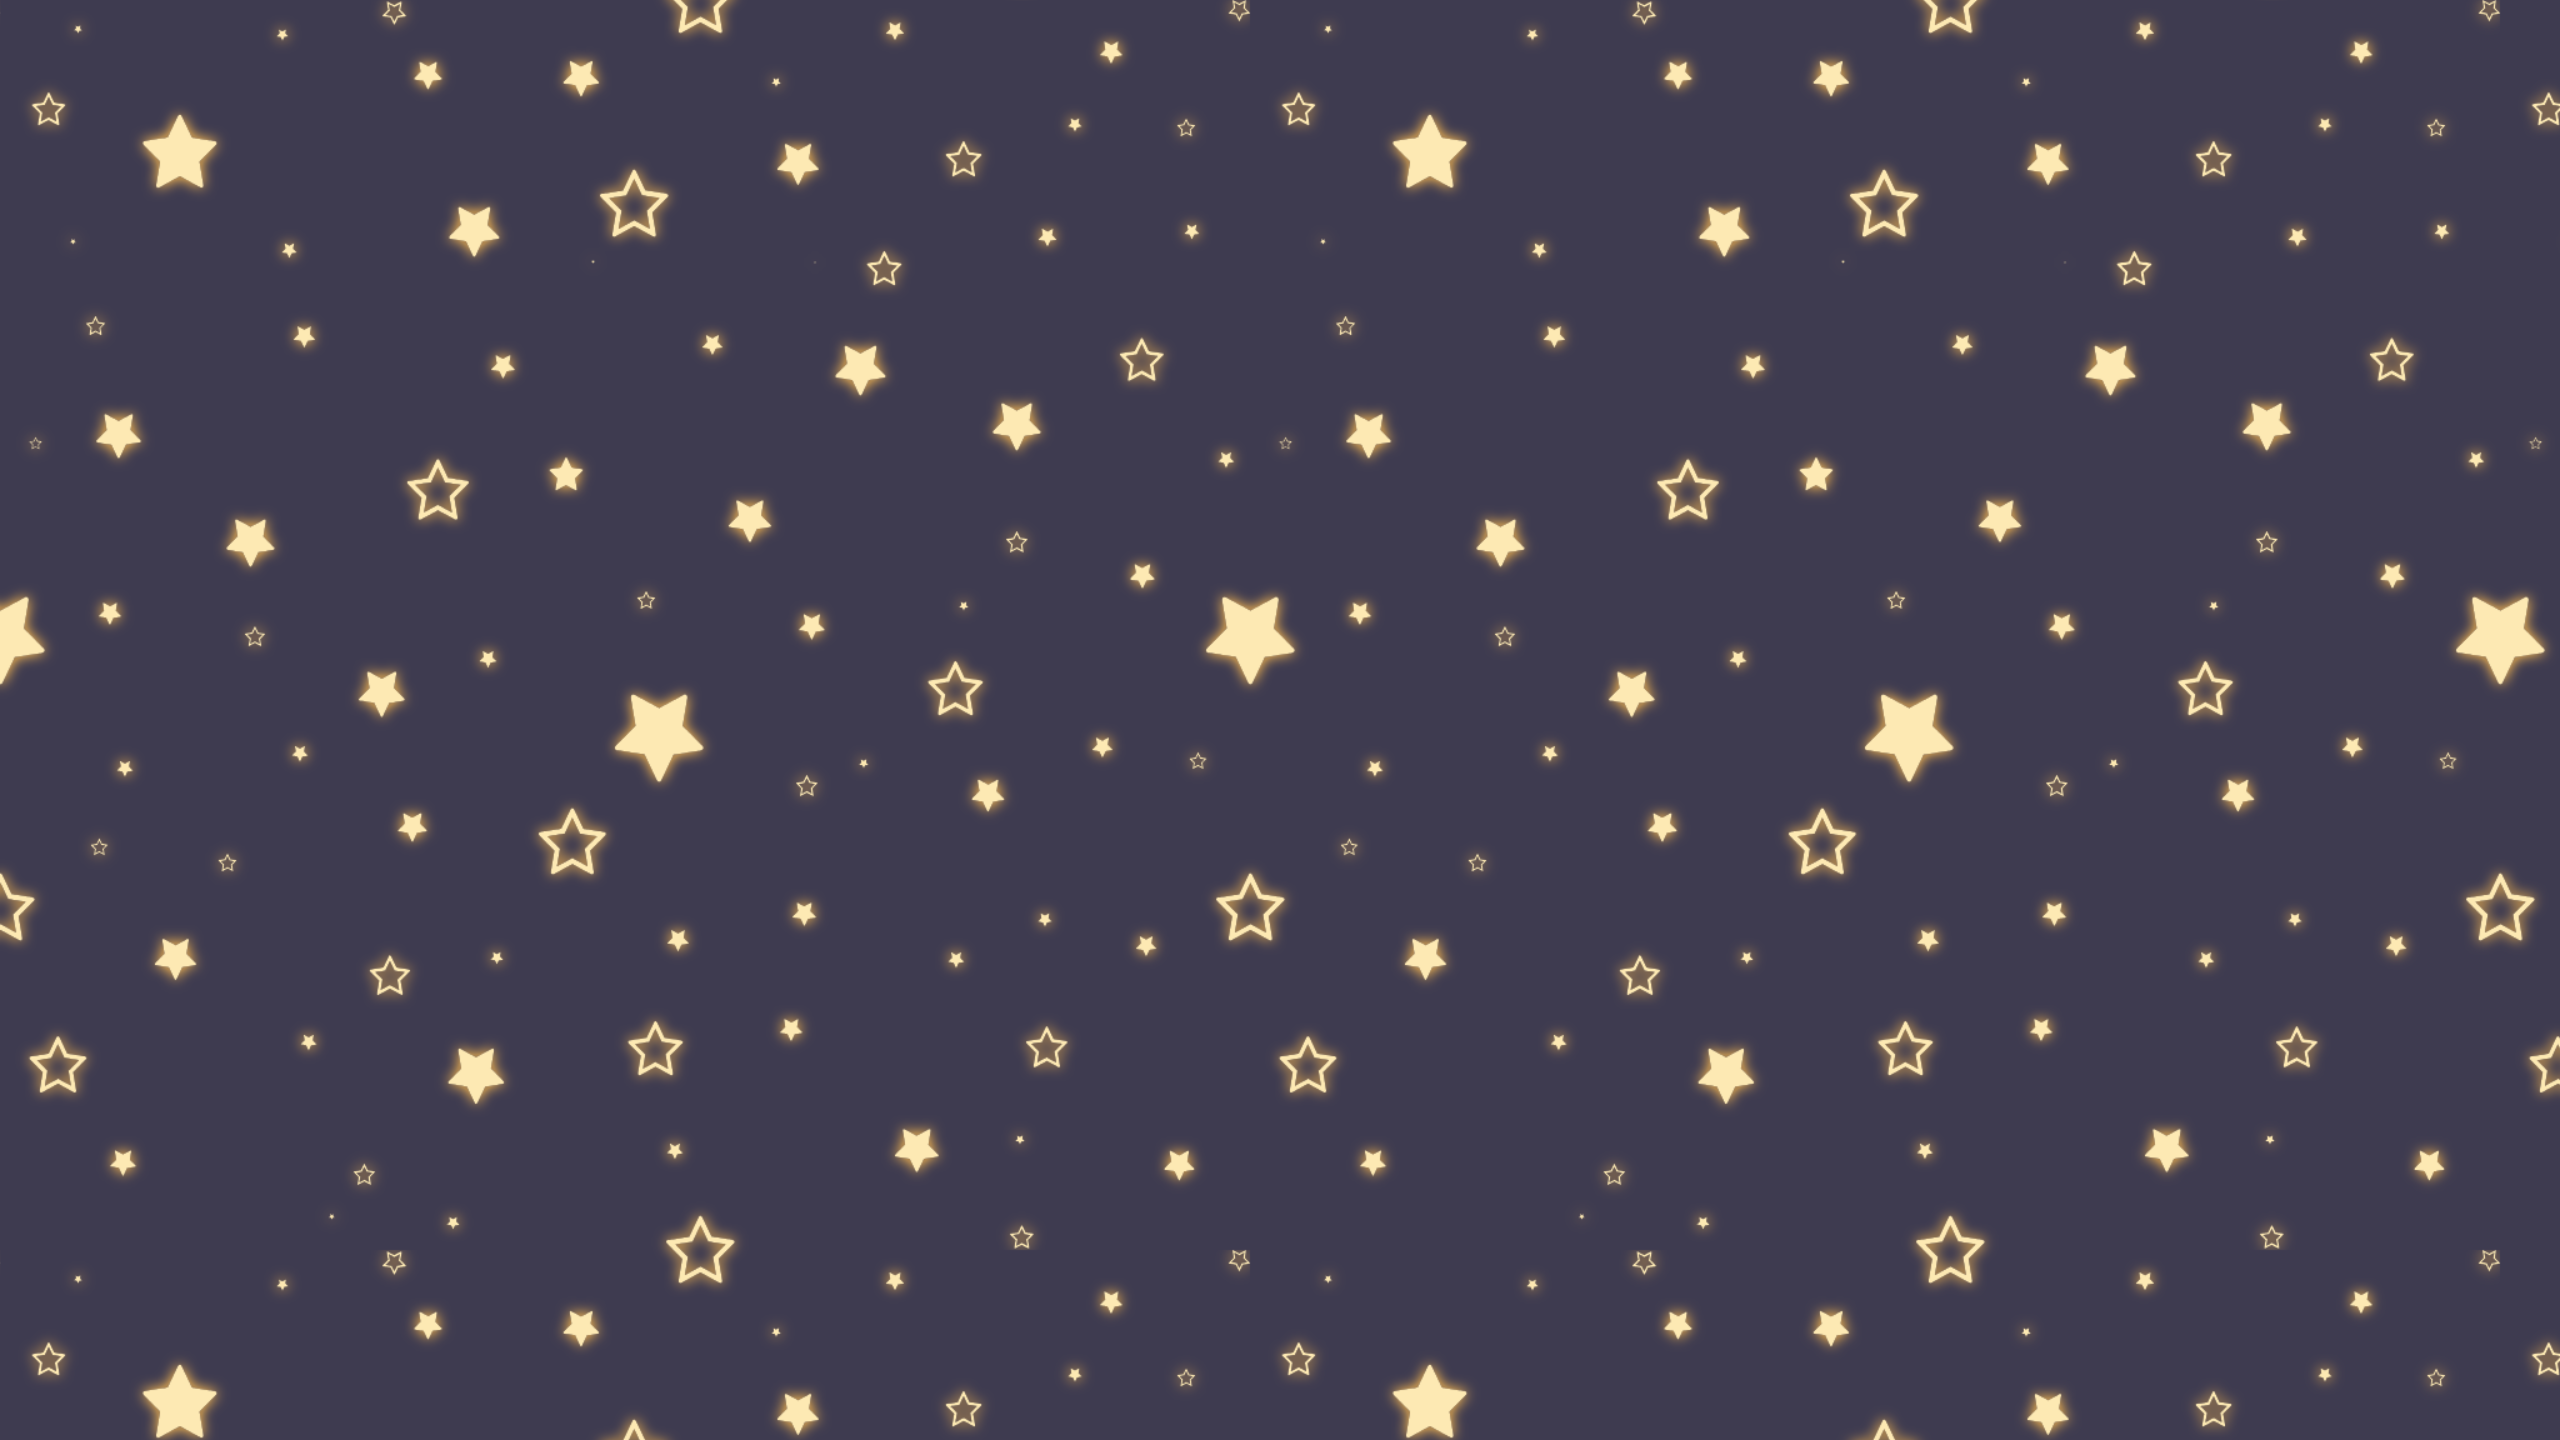 Design A Glowing Star Pattern And Turn It Into A Background 2560x1440